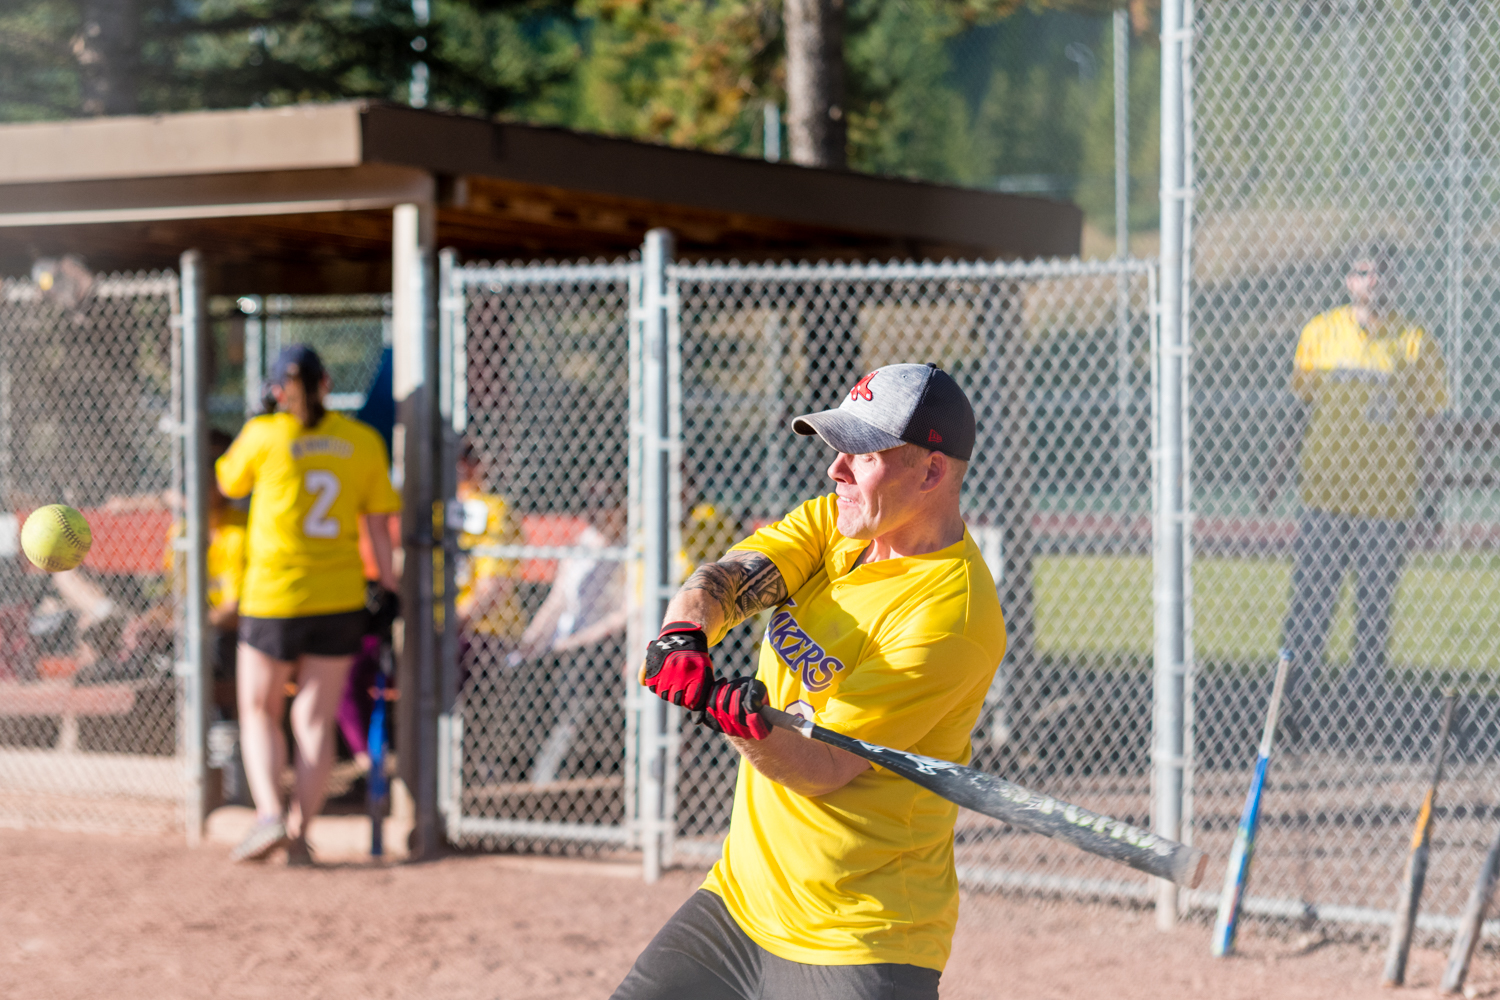 2017 08 22 Softball Playoffs 1-160.jpg